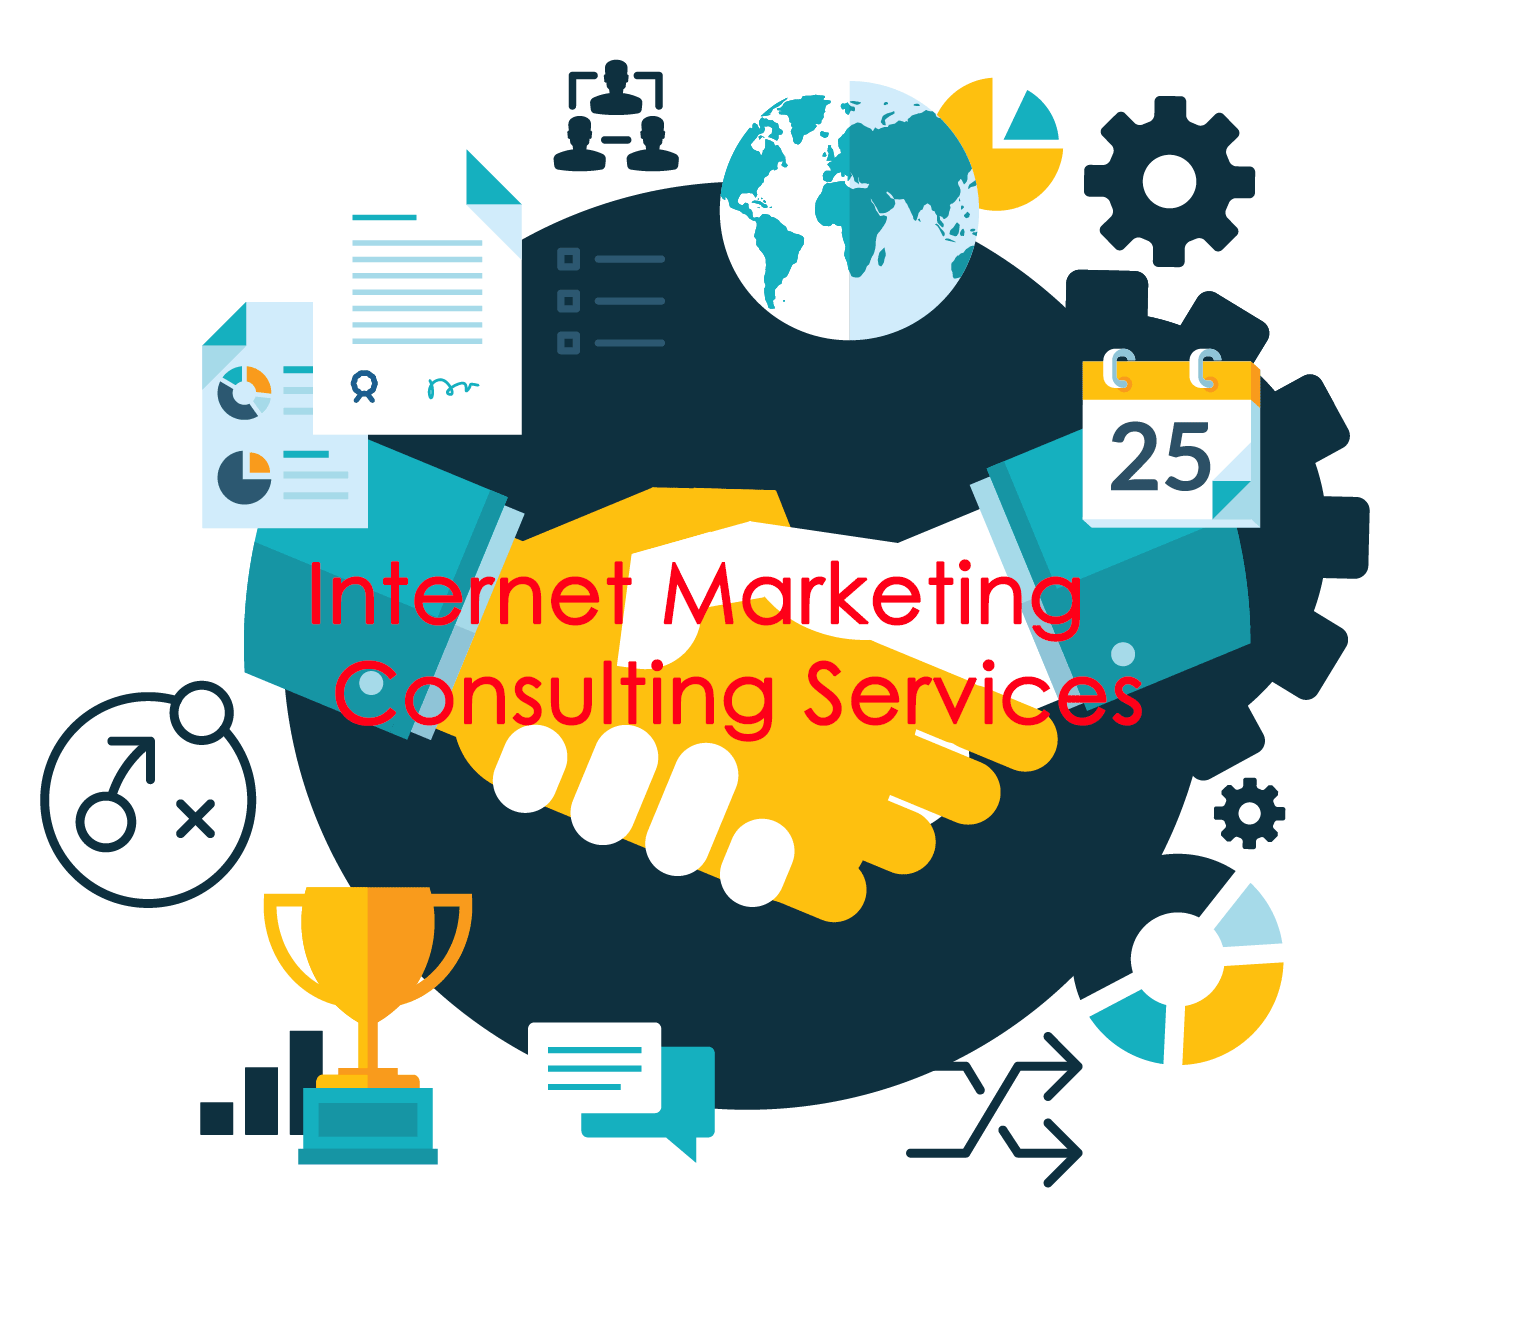 Internet Marketing Consulting Service